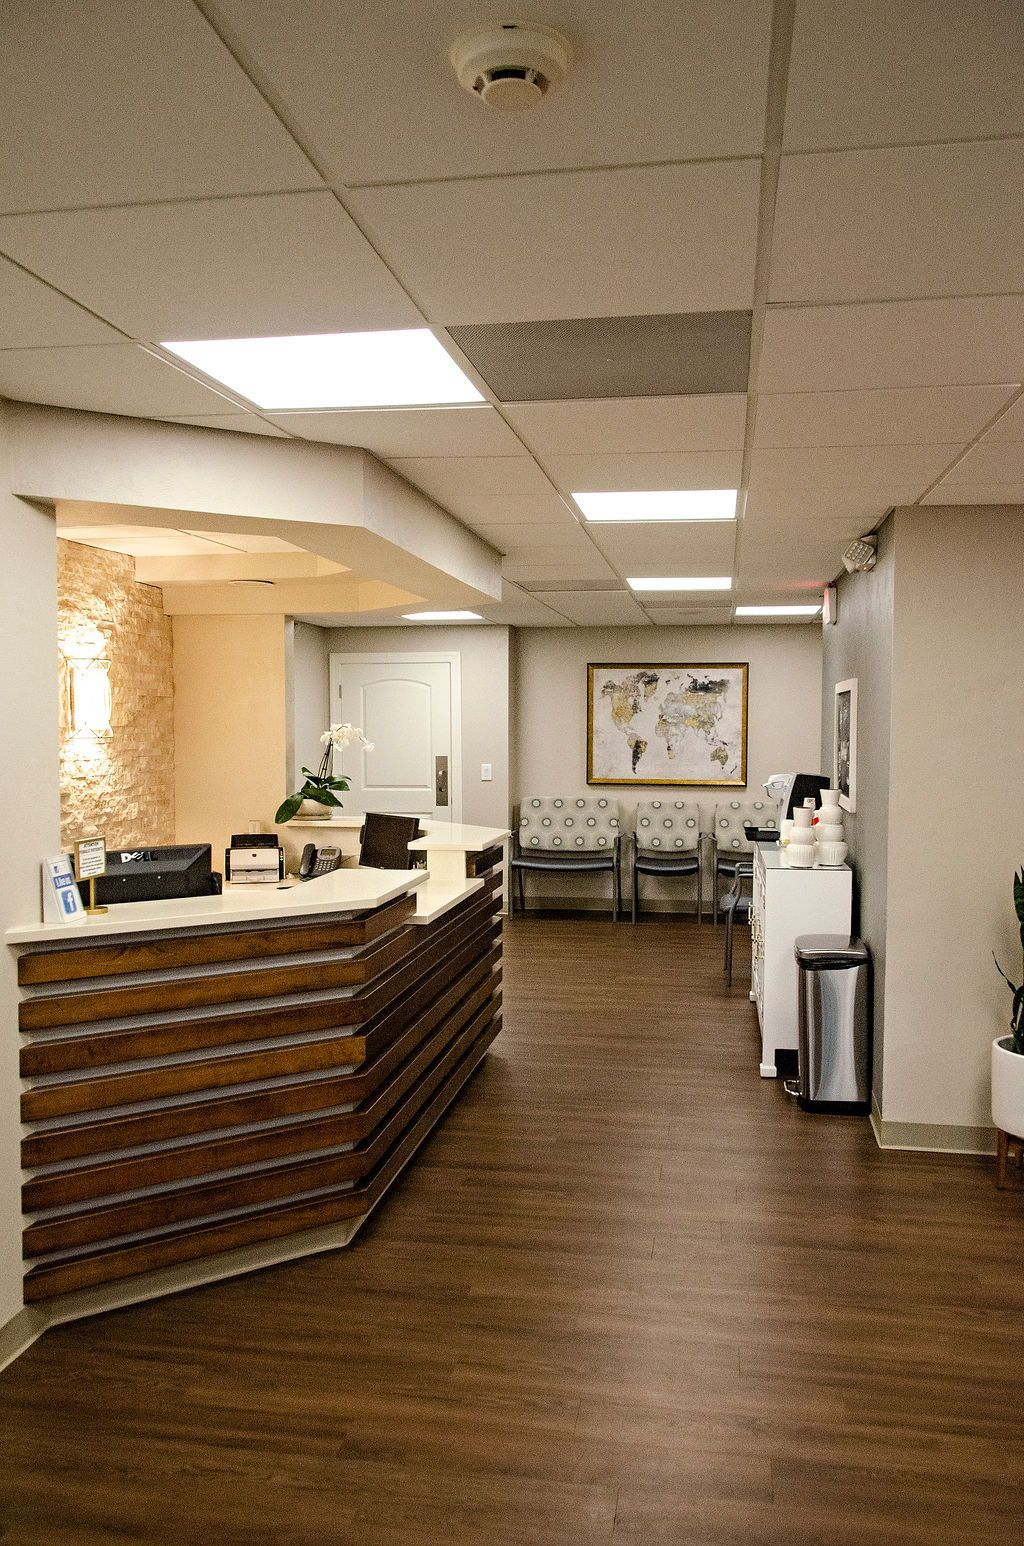 Design For A Medical Office In